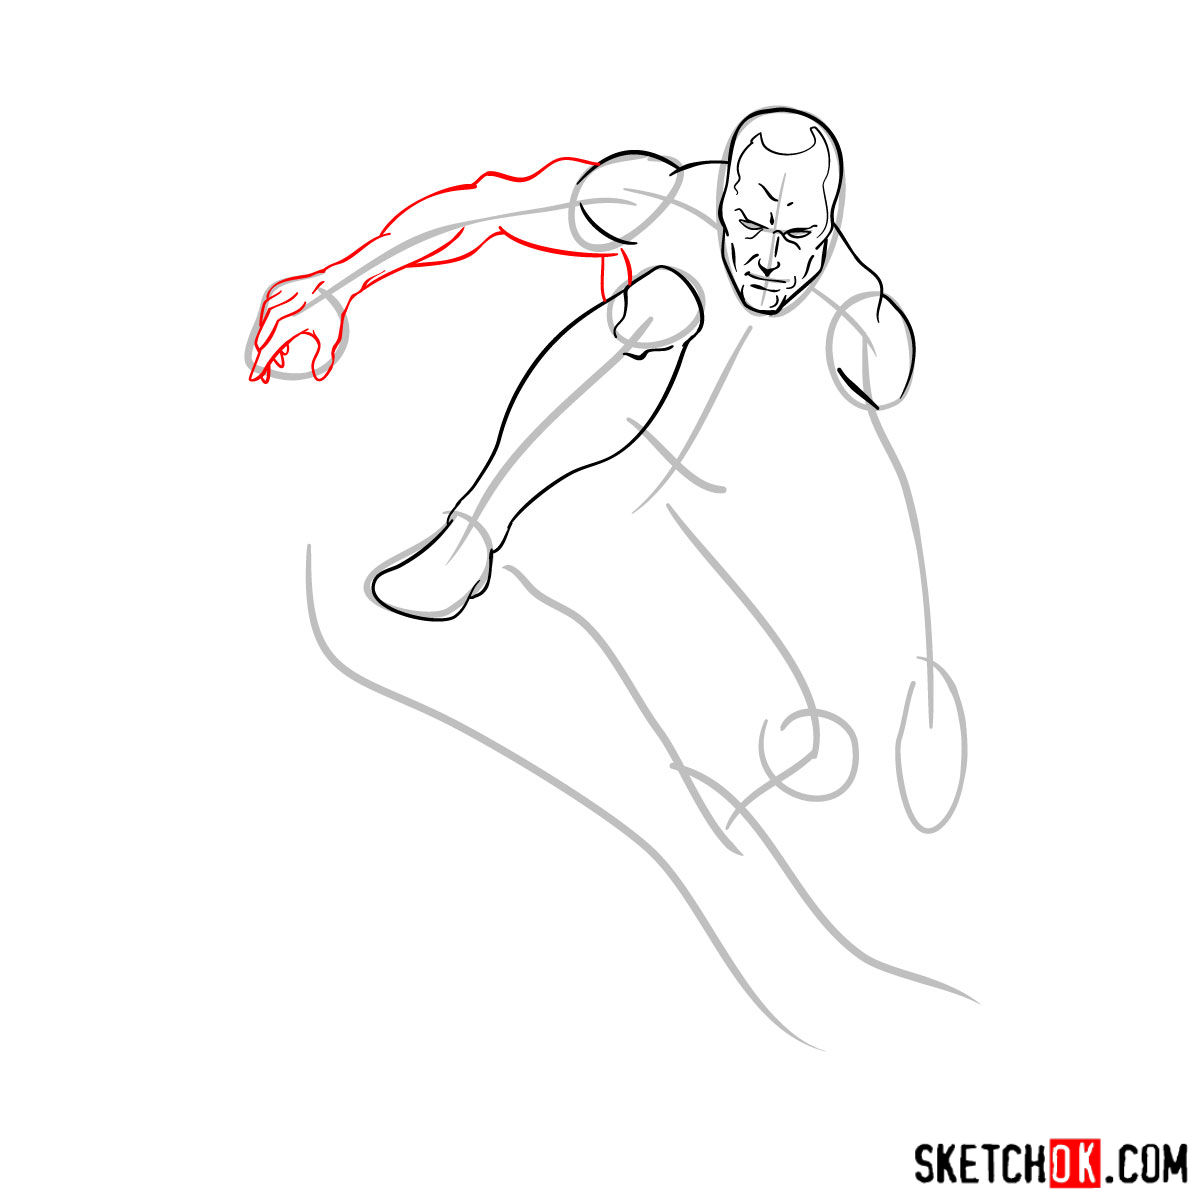 How to draw Iceman - step by step drawing tutorial - step 06